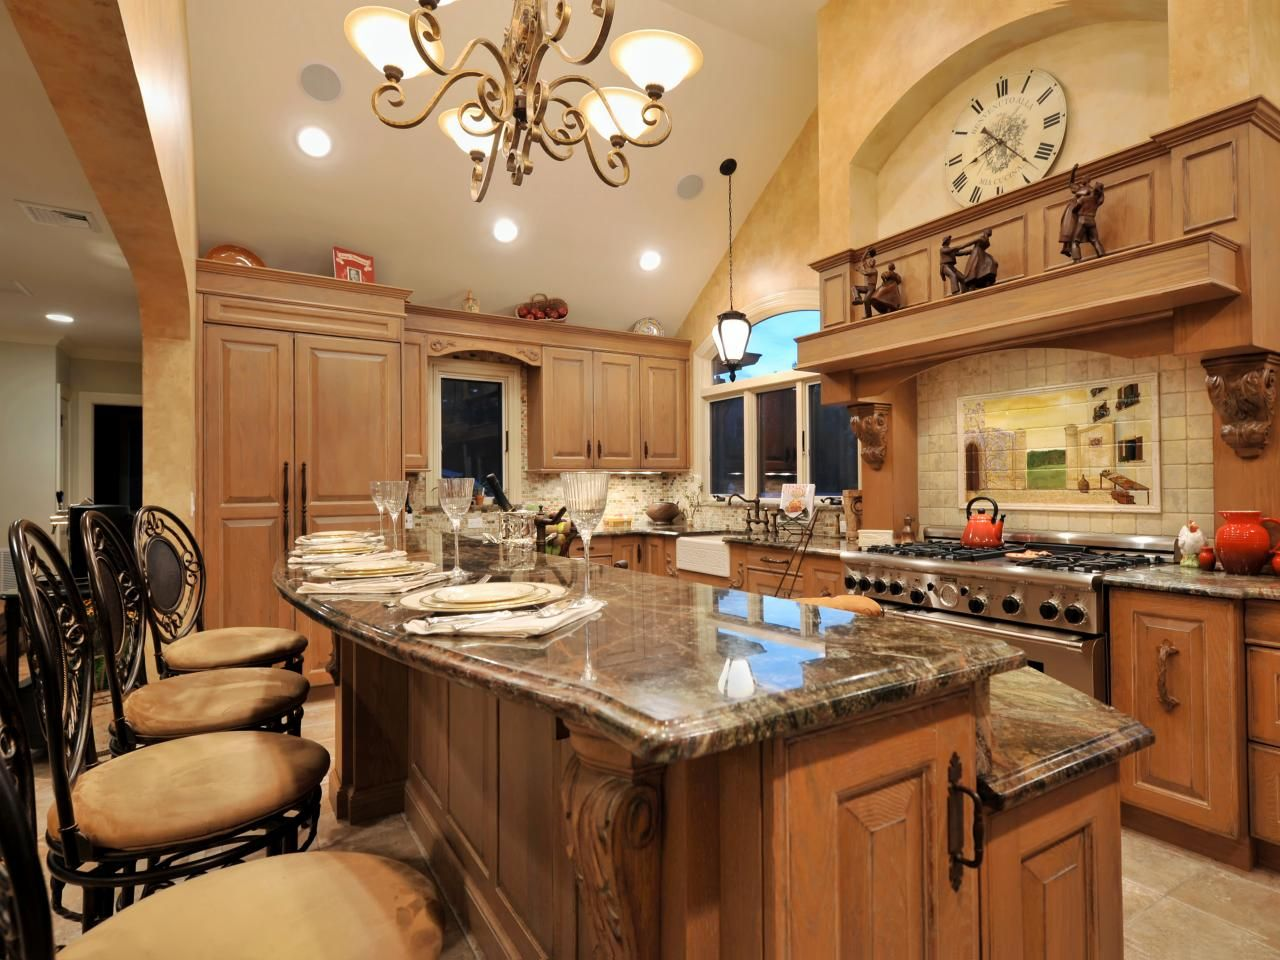 Granite Kitchen Islands A Two Tiered Kitchen Island With Granite Countertops